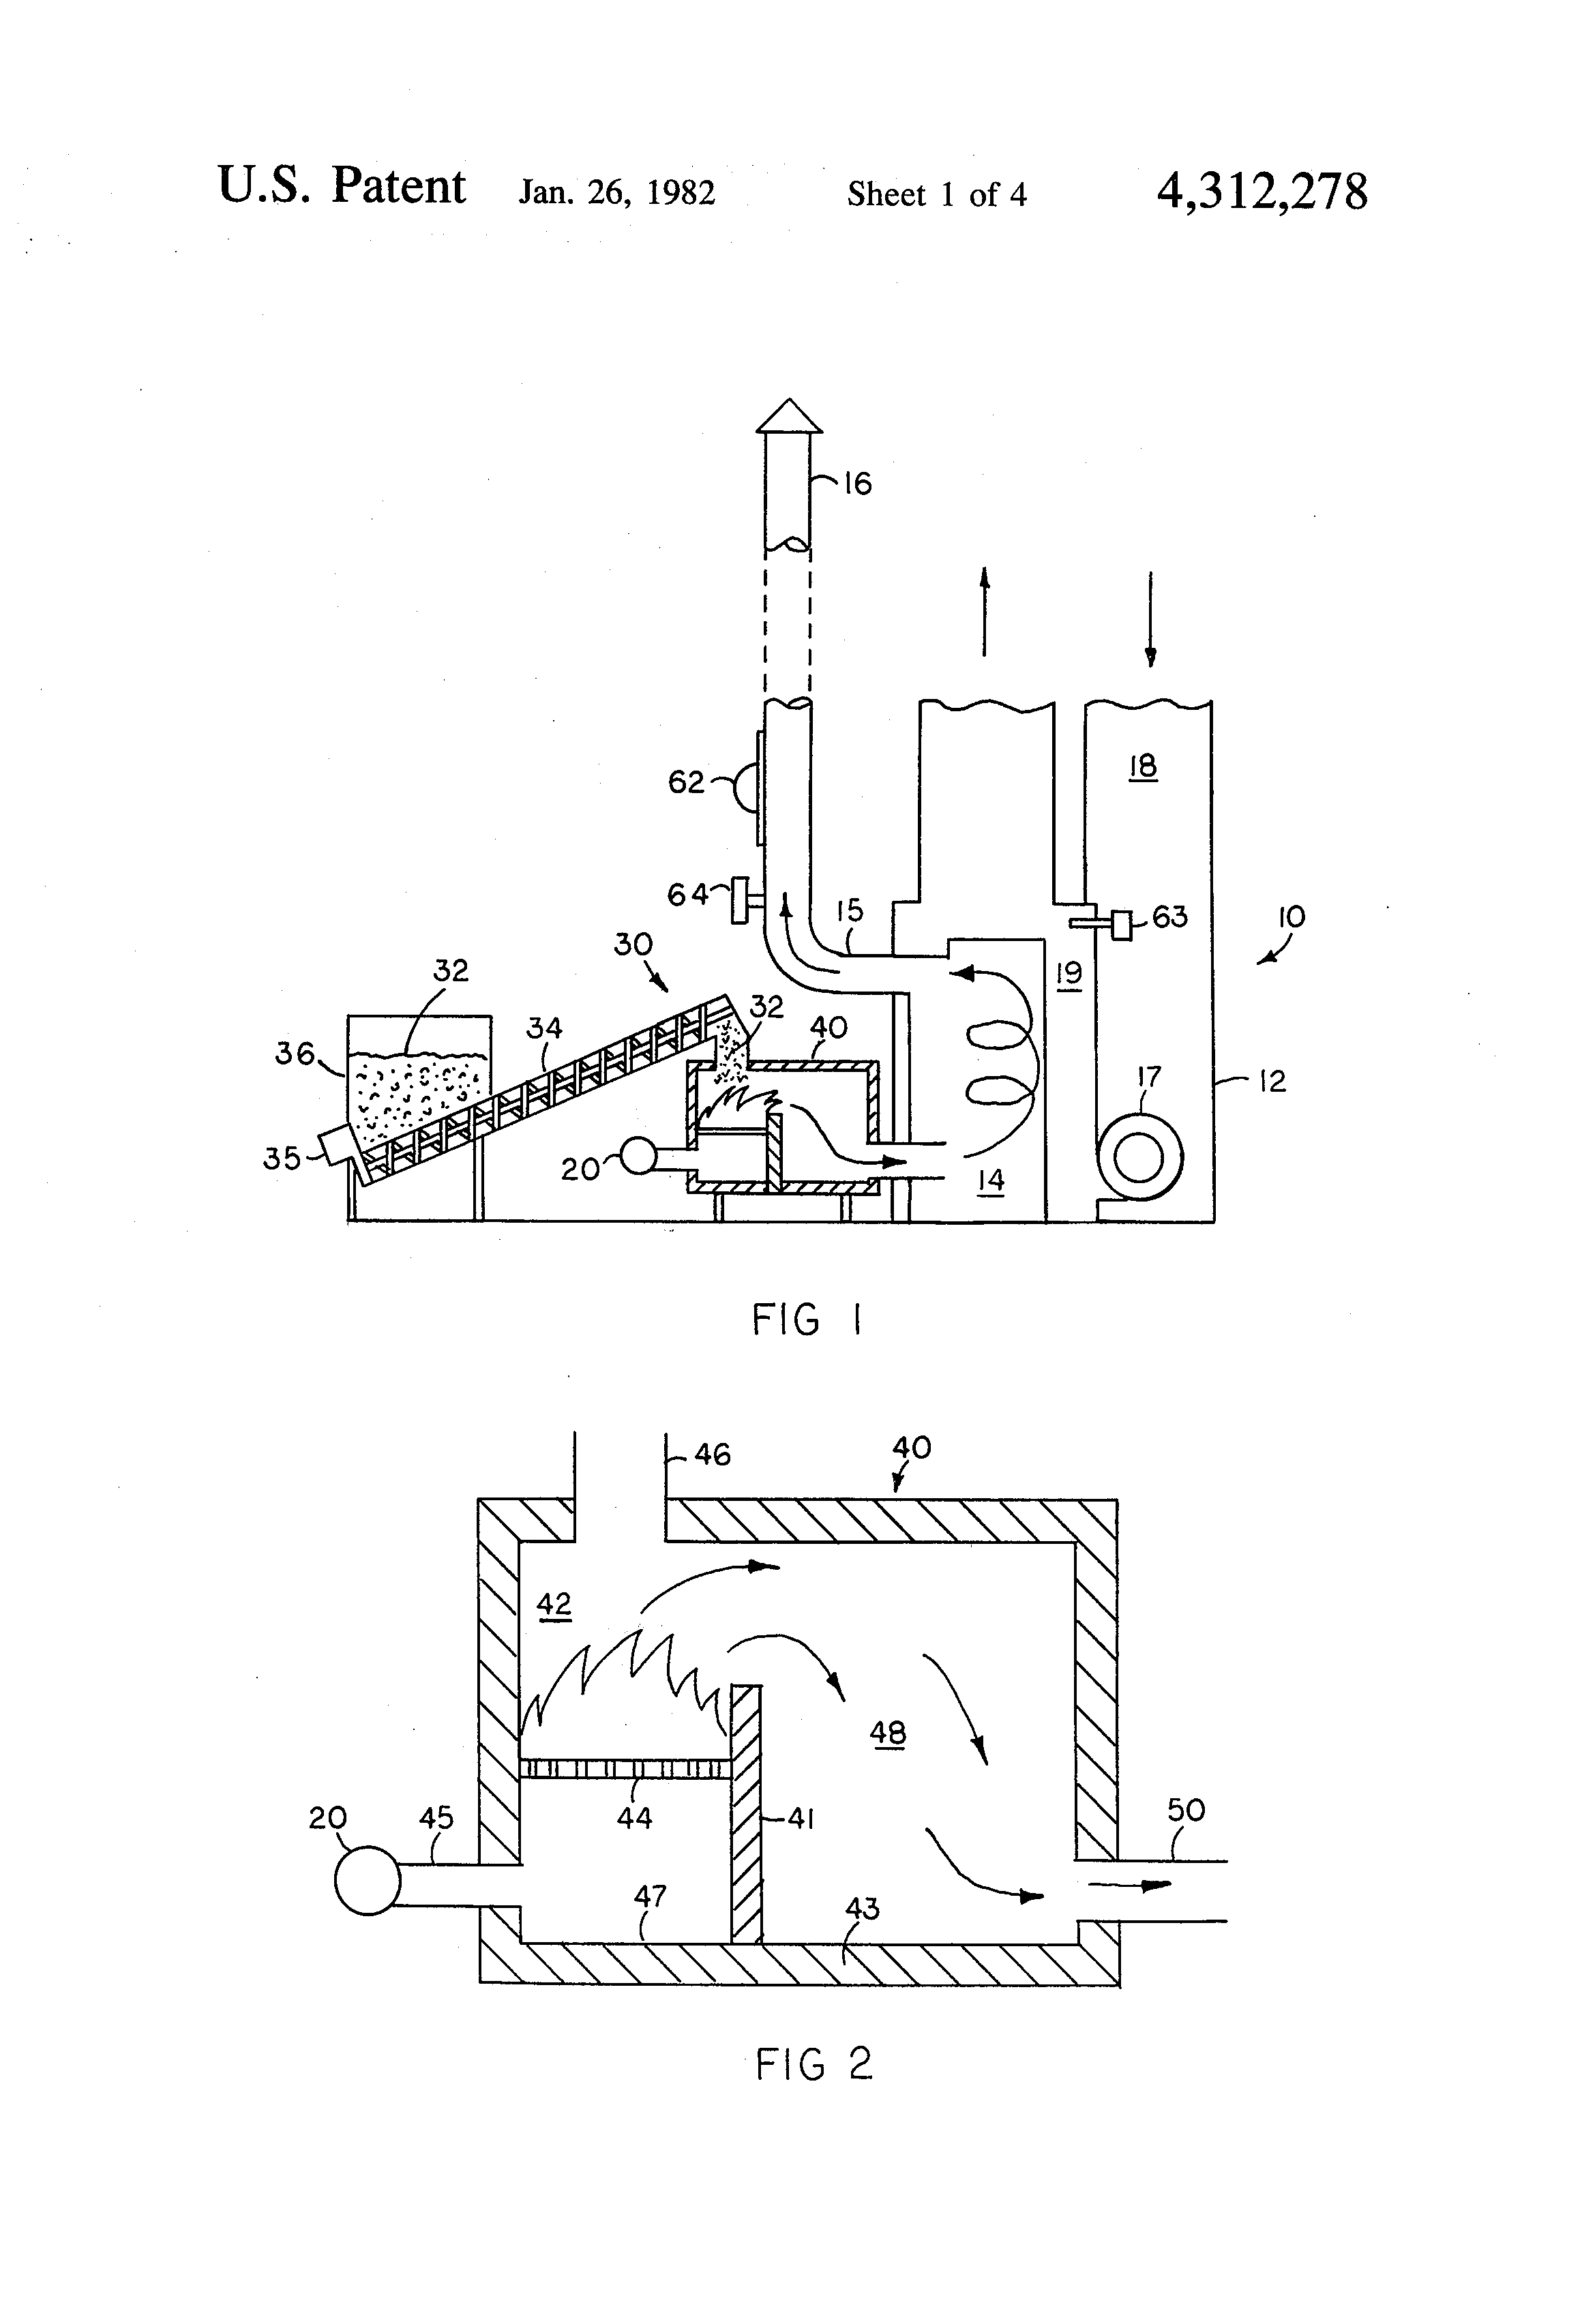 2010 12 01 archive besides US4312278 in addition Plate Heat Exchanger Boiler besides Diagram Of An Heat Exchanger besides Weatherking Acclaim Ii Gas Furnace Wire Diagram. on furnace heat exchanger tube